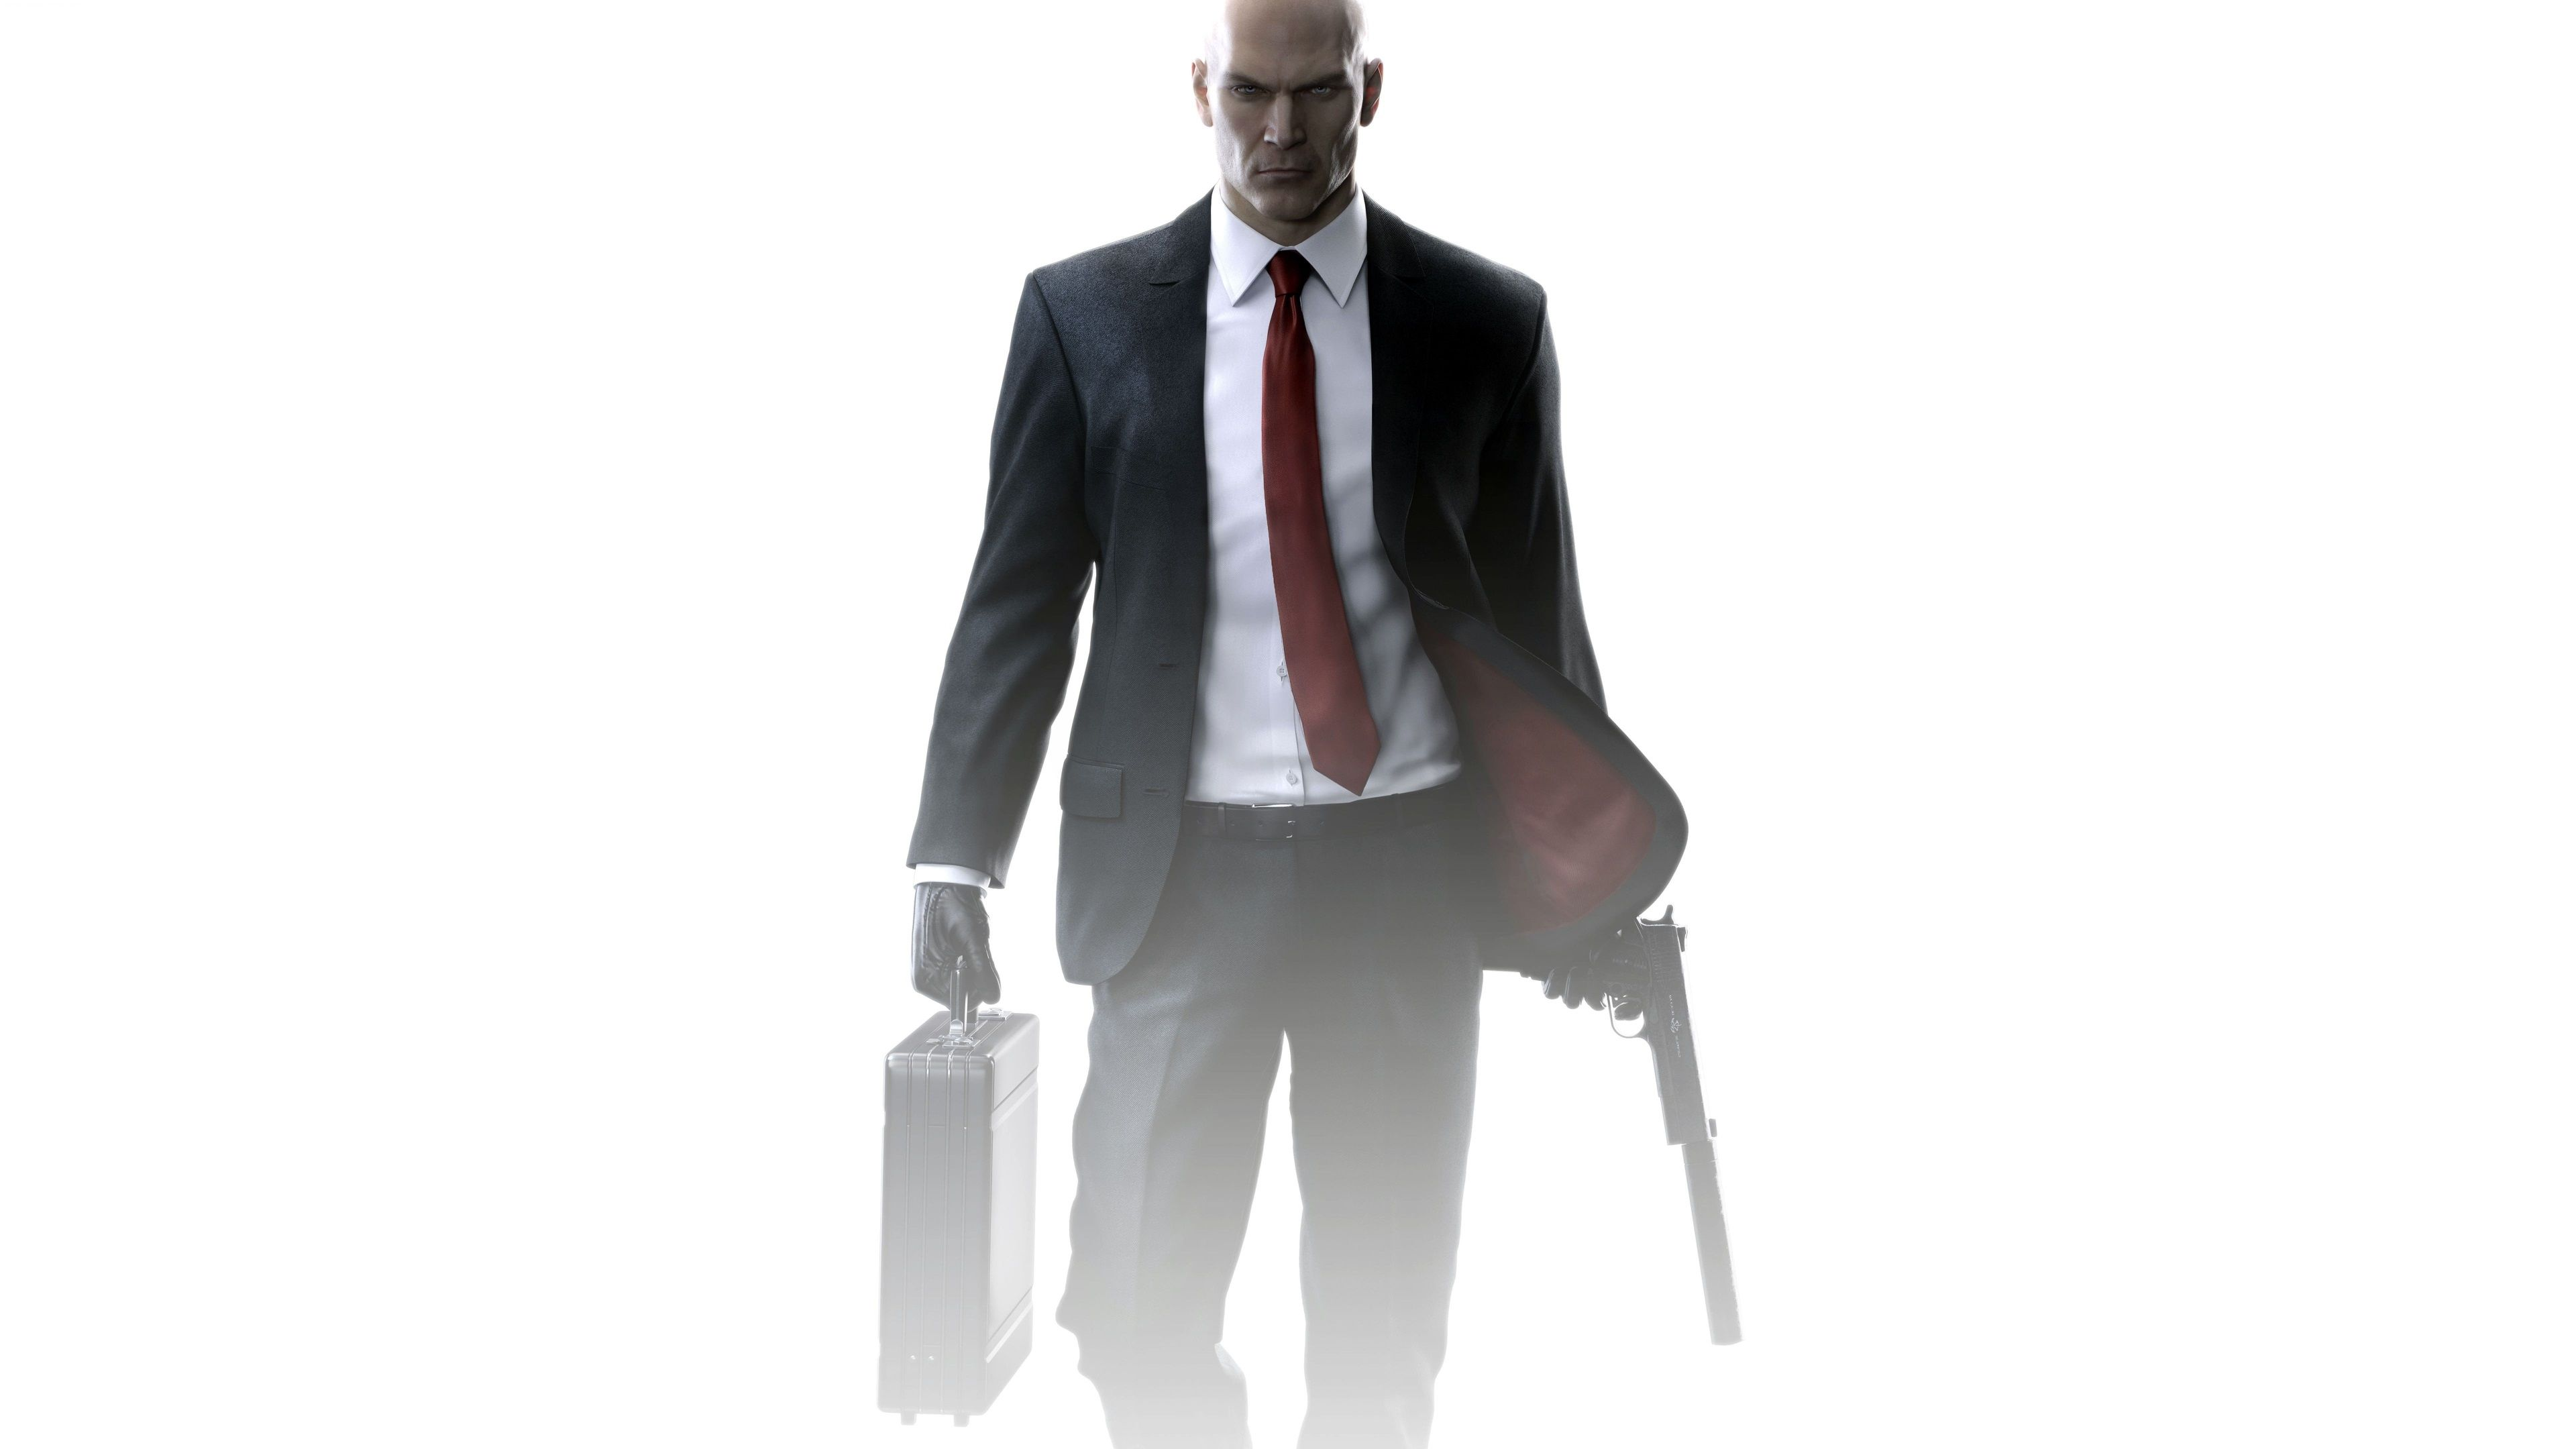 3840x2160 Hitman Agent 47 4k Ultra High Definition Wallpaper Hitman Agent 47 Agent 47 Hitman